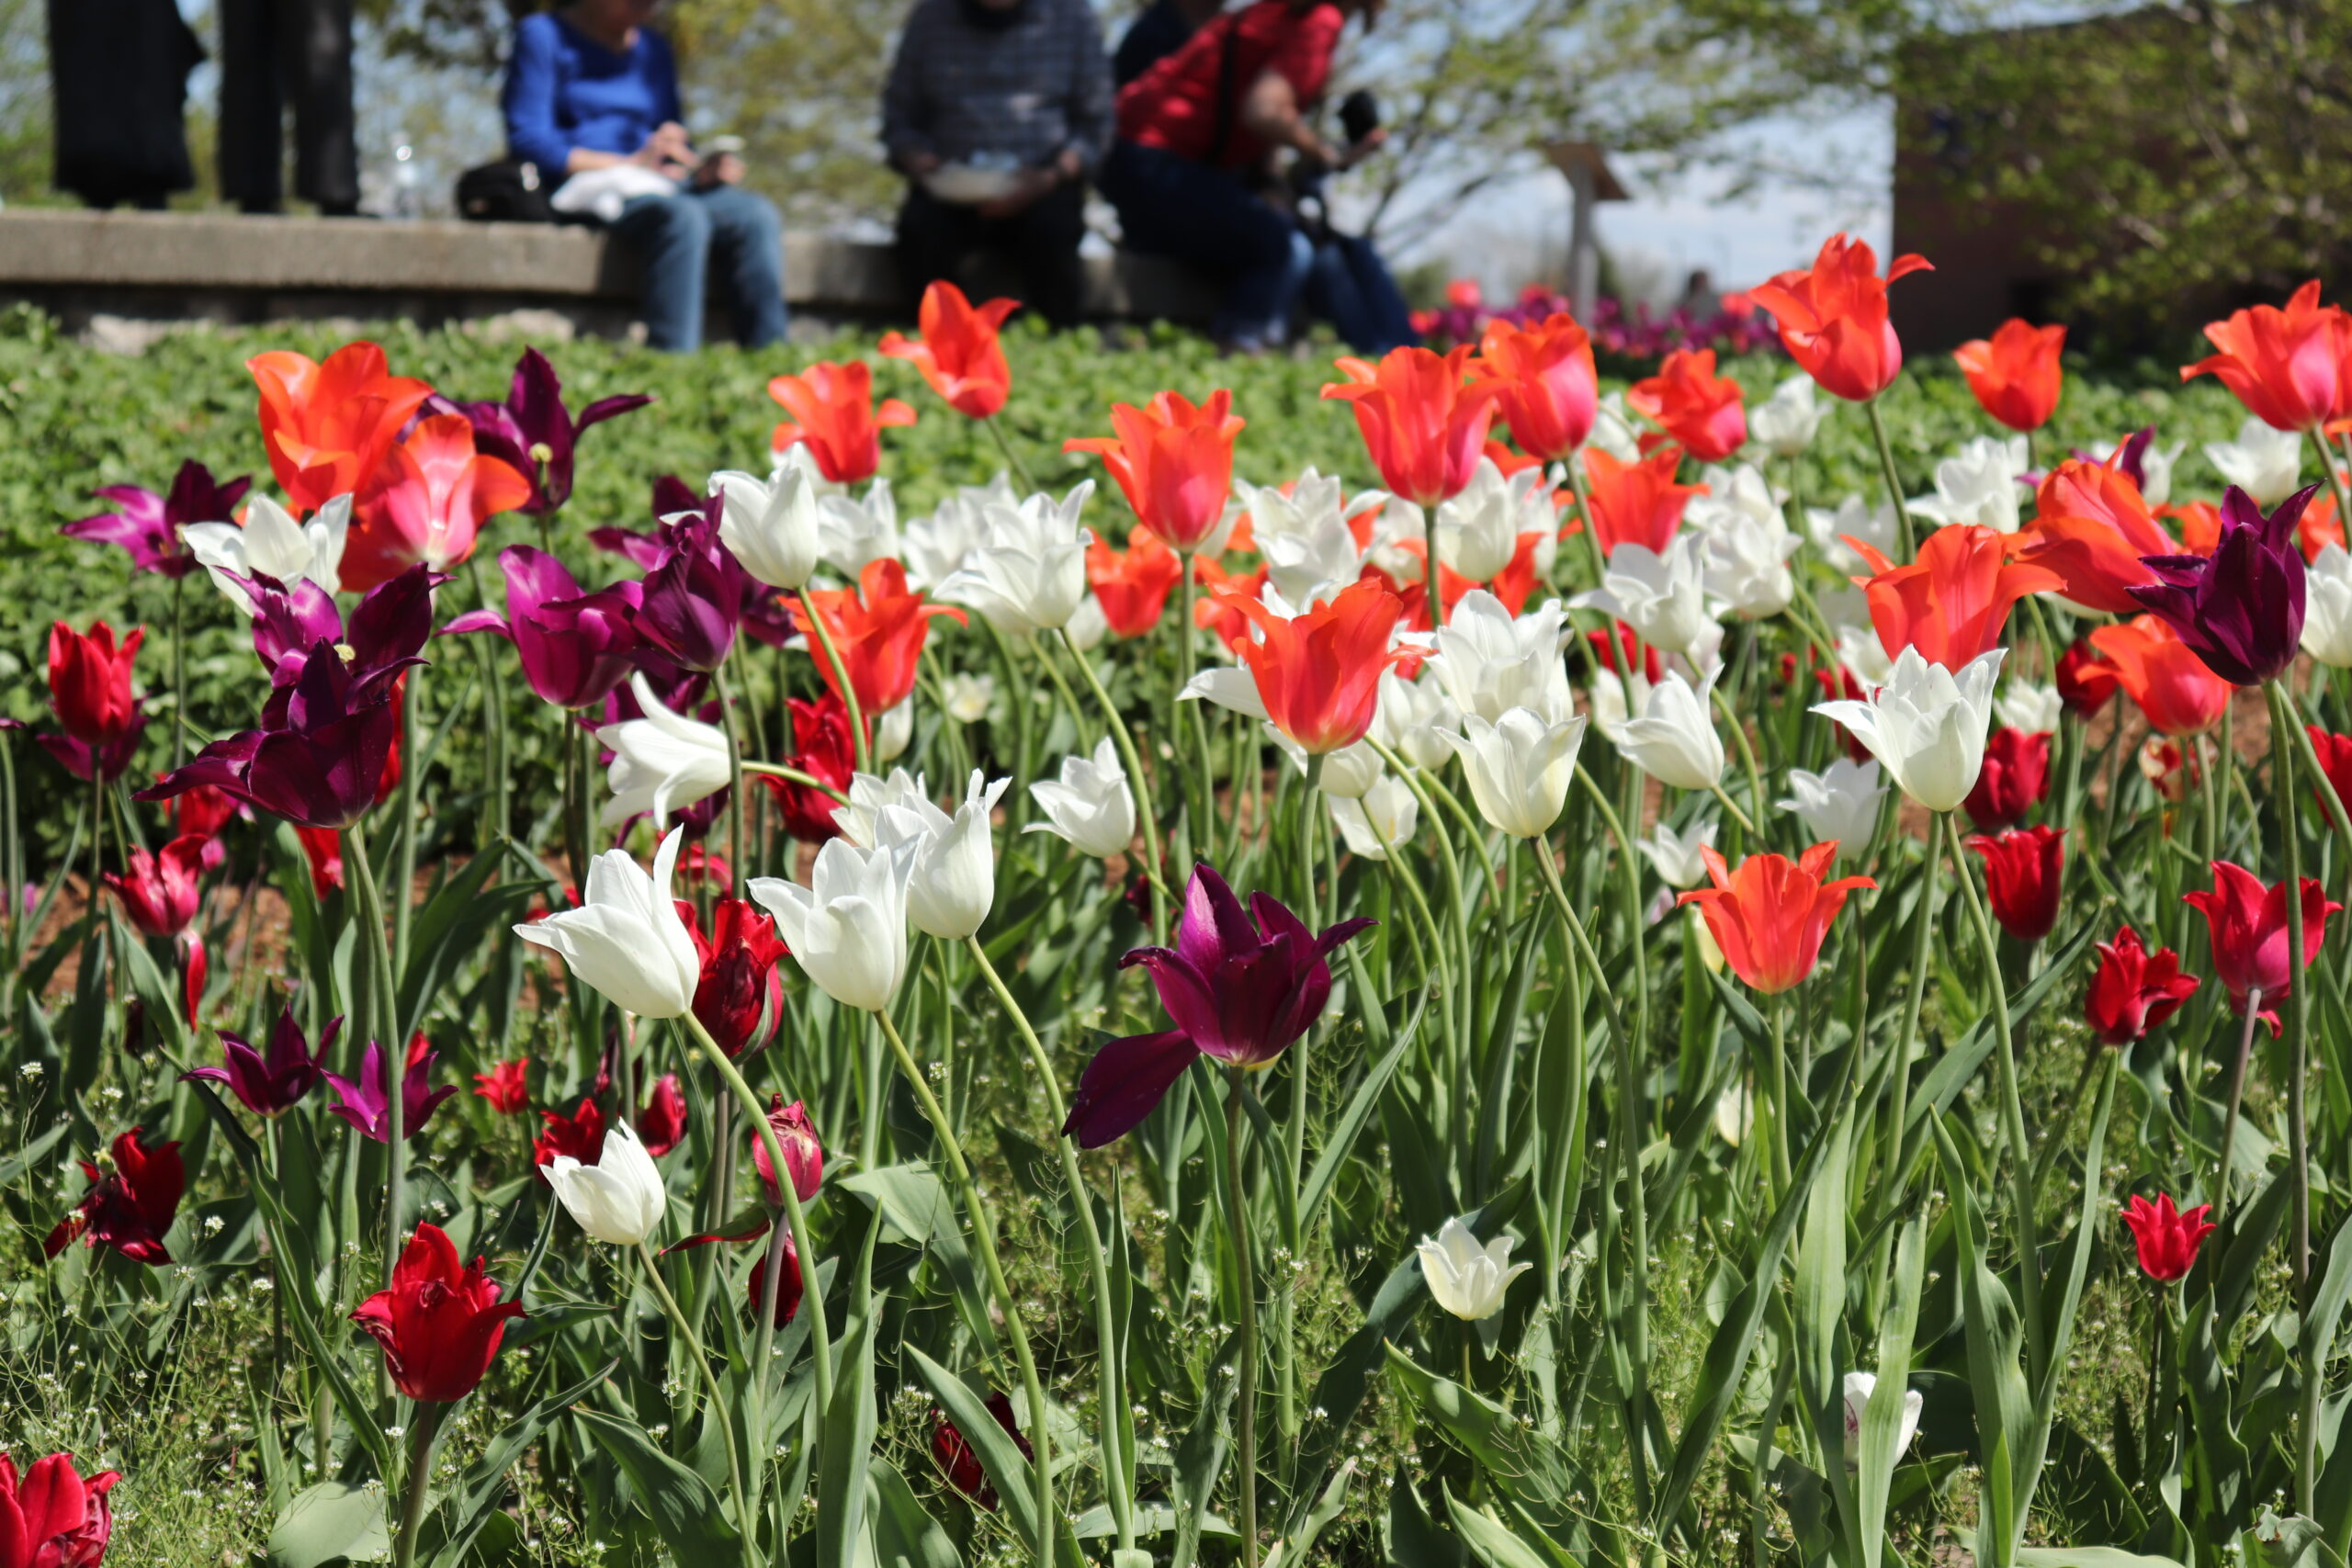 Tulips blooming in downtown Holland,MI